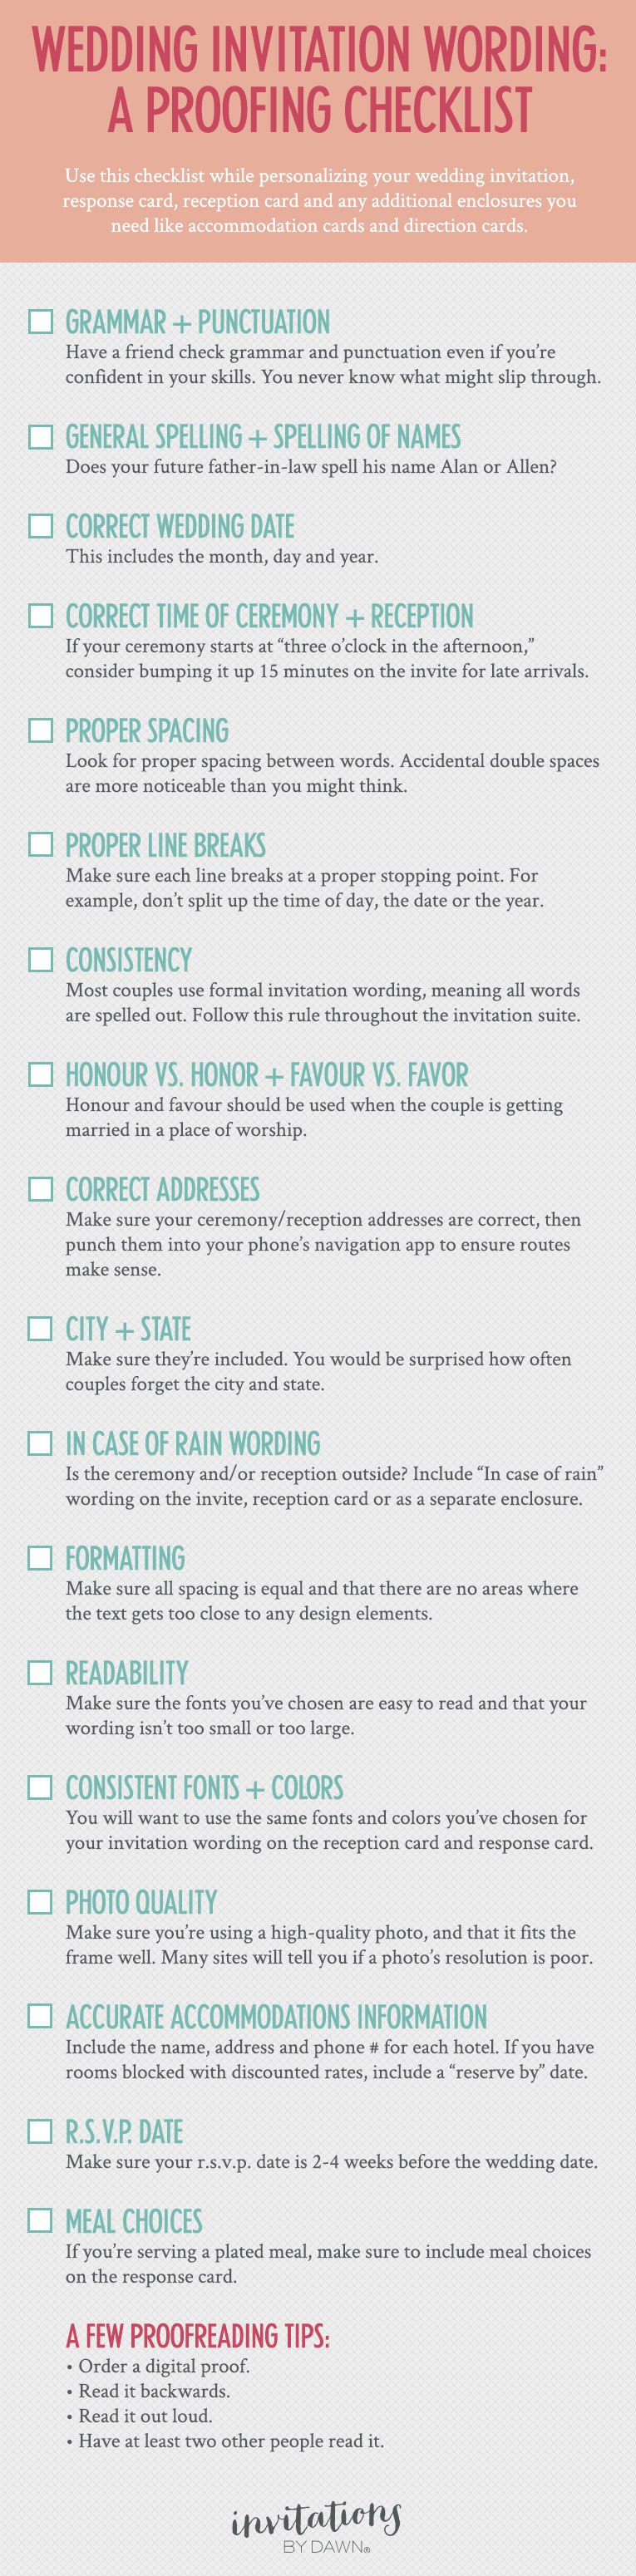 A Proofing Checklist For Wedding Invitations Invitations By Dawn